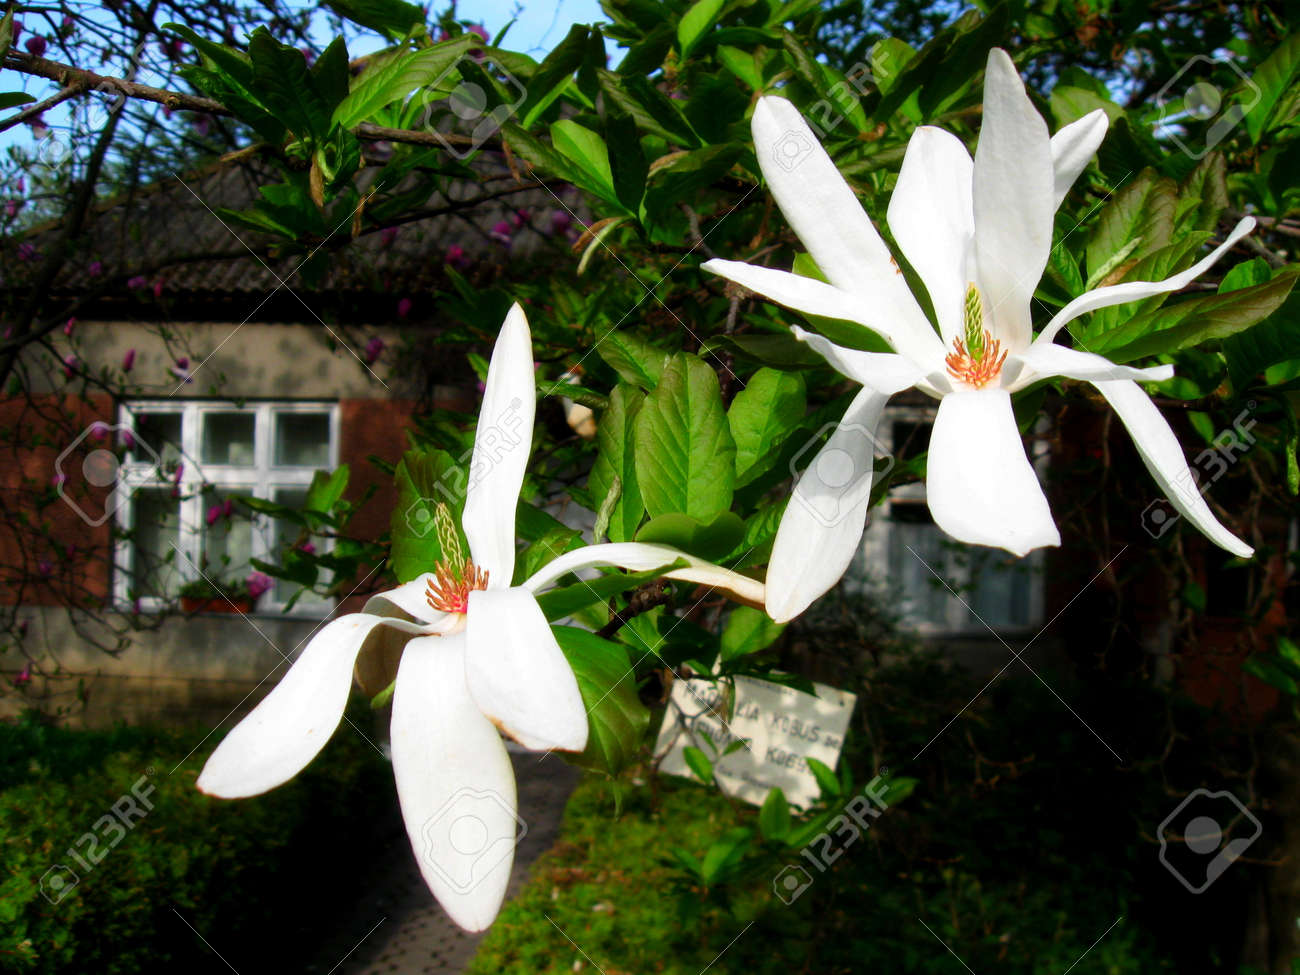 Bloomy magnolia tree with white flowers